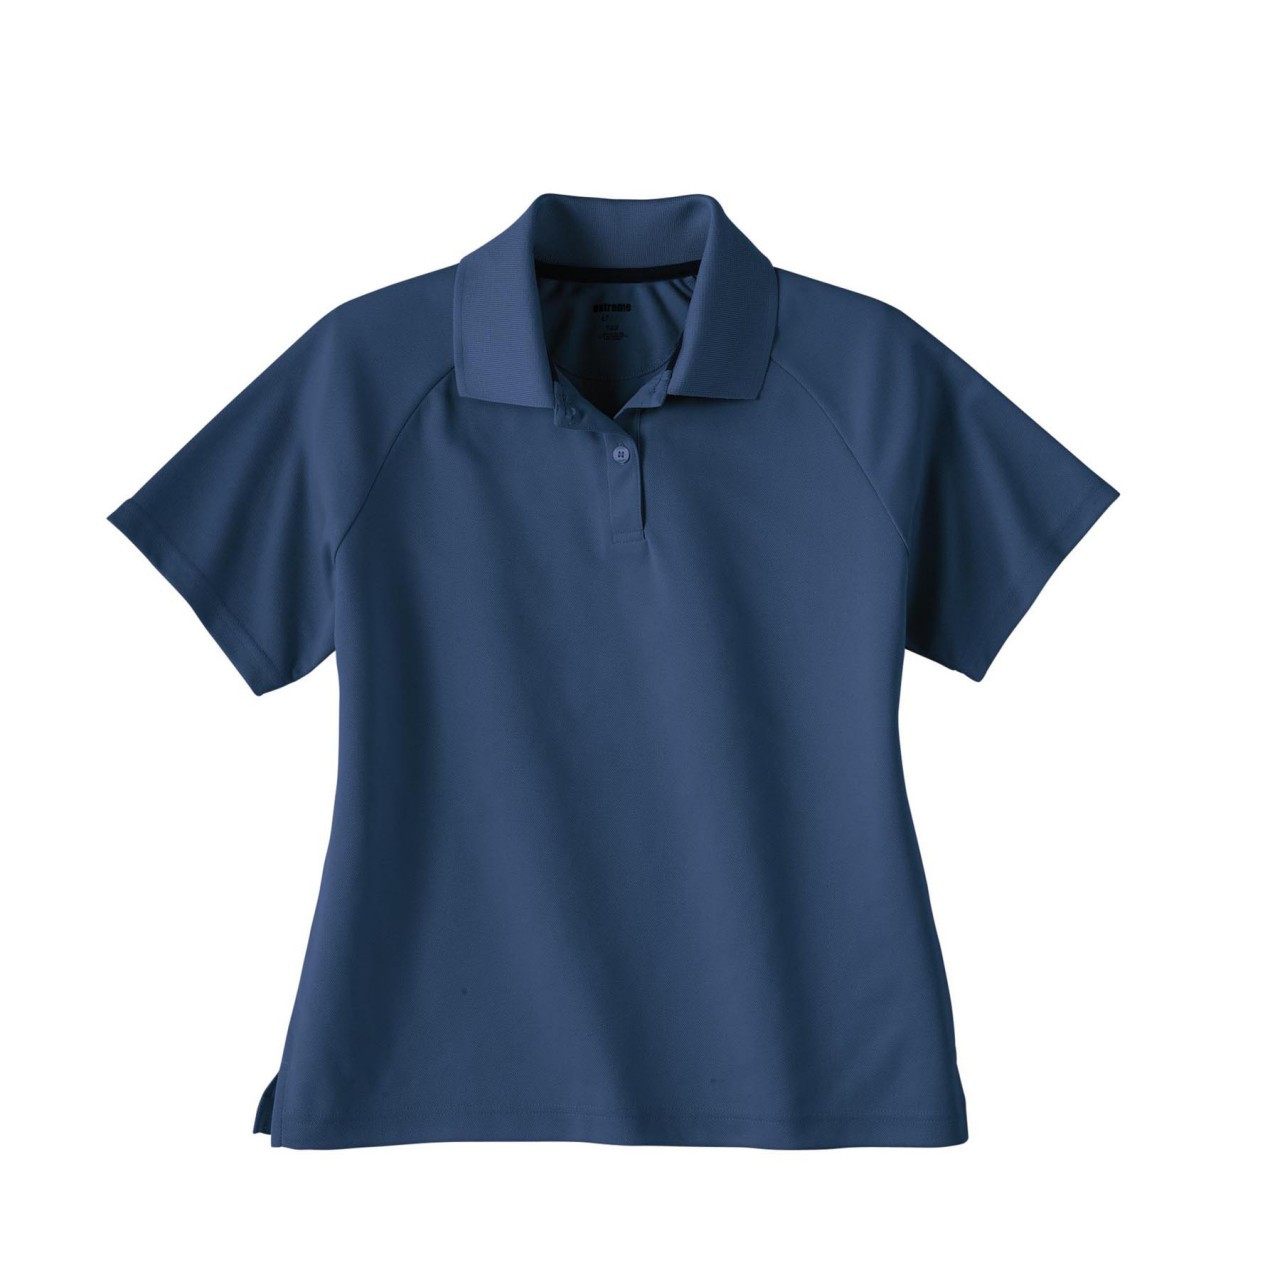 Ceramic Blue - 75046 Extreme Ladies' Eperformance Pique Polo Shirt | BlankClothing.ca